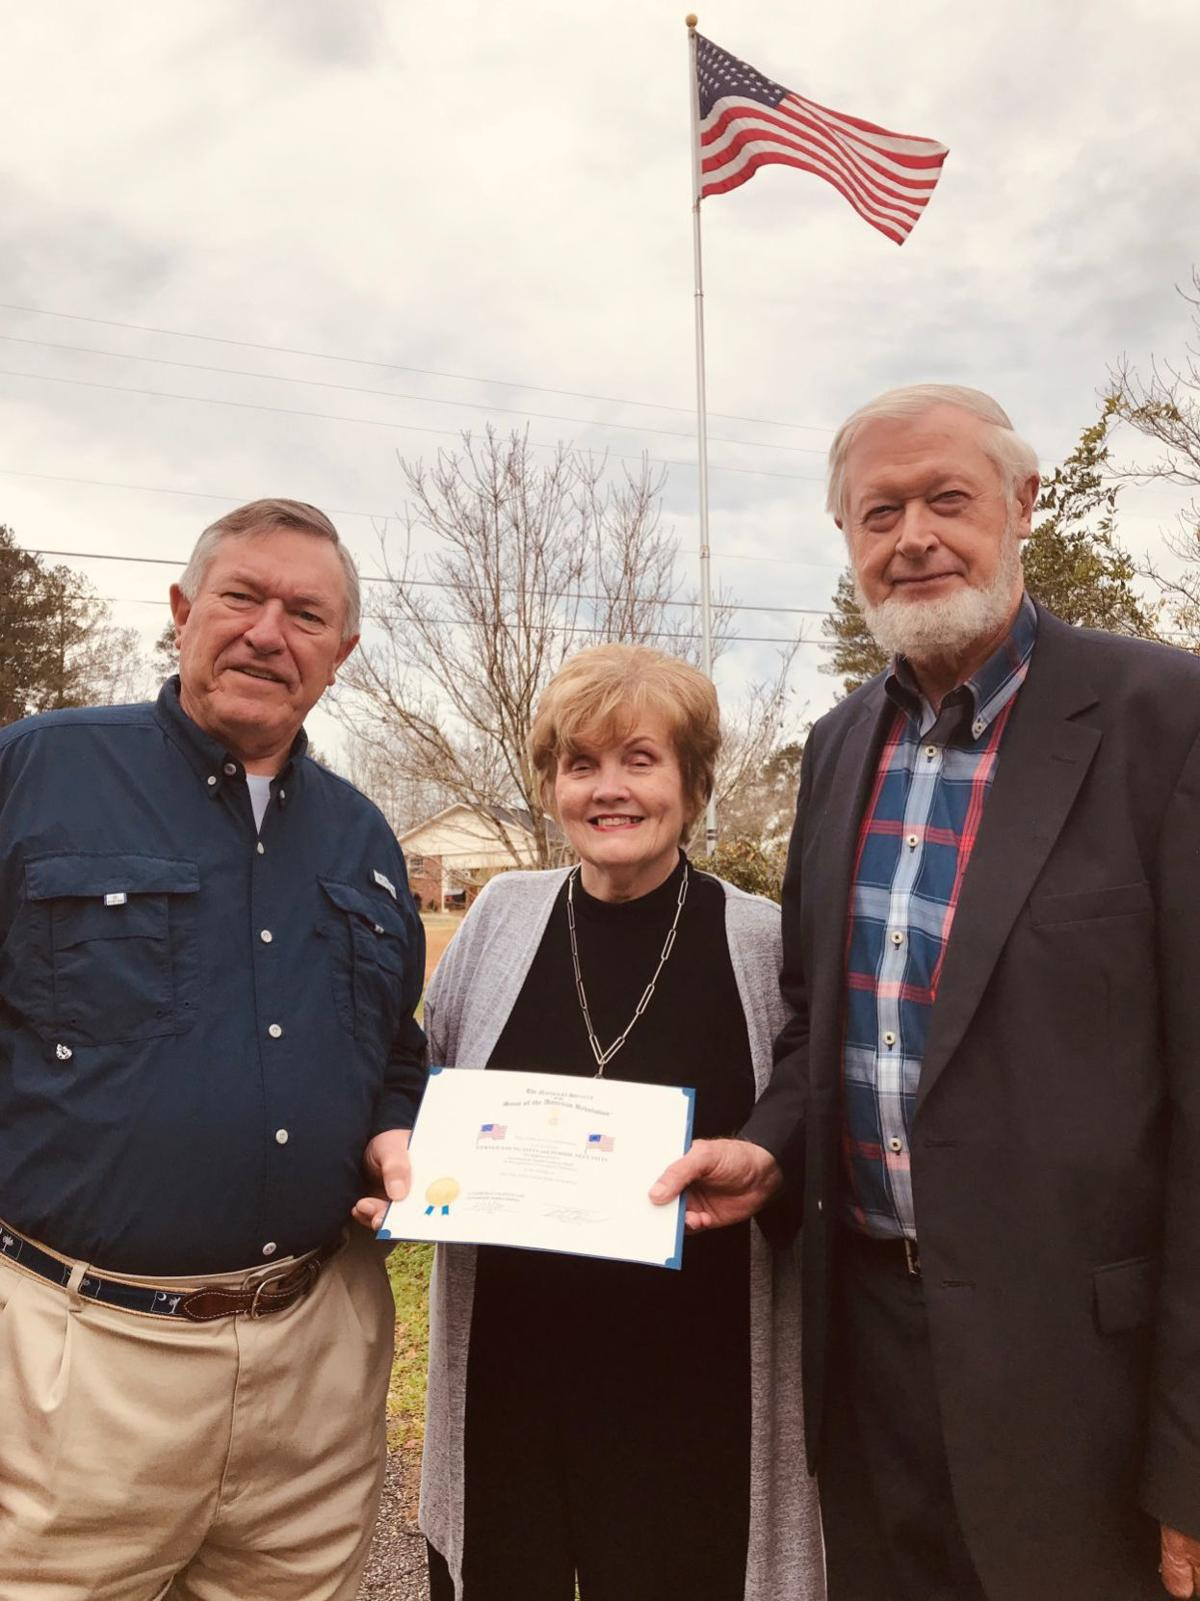 Cambridge Chapter/SAR recognizes residents with flag certificates